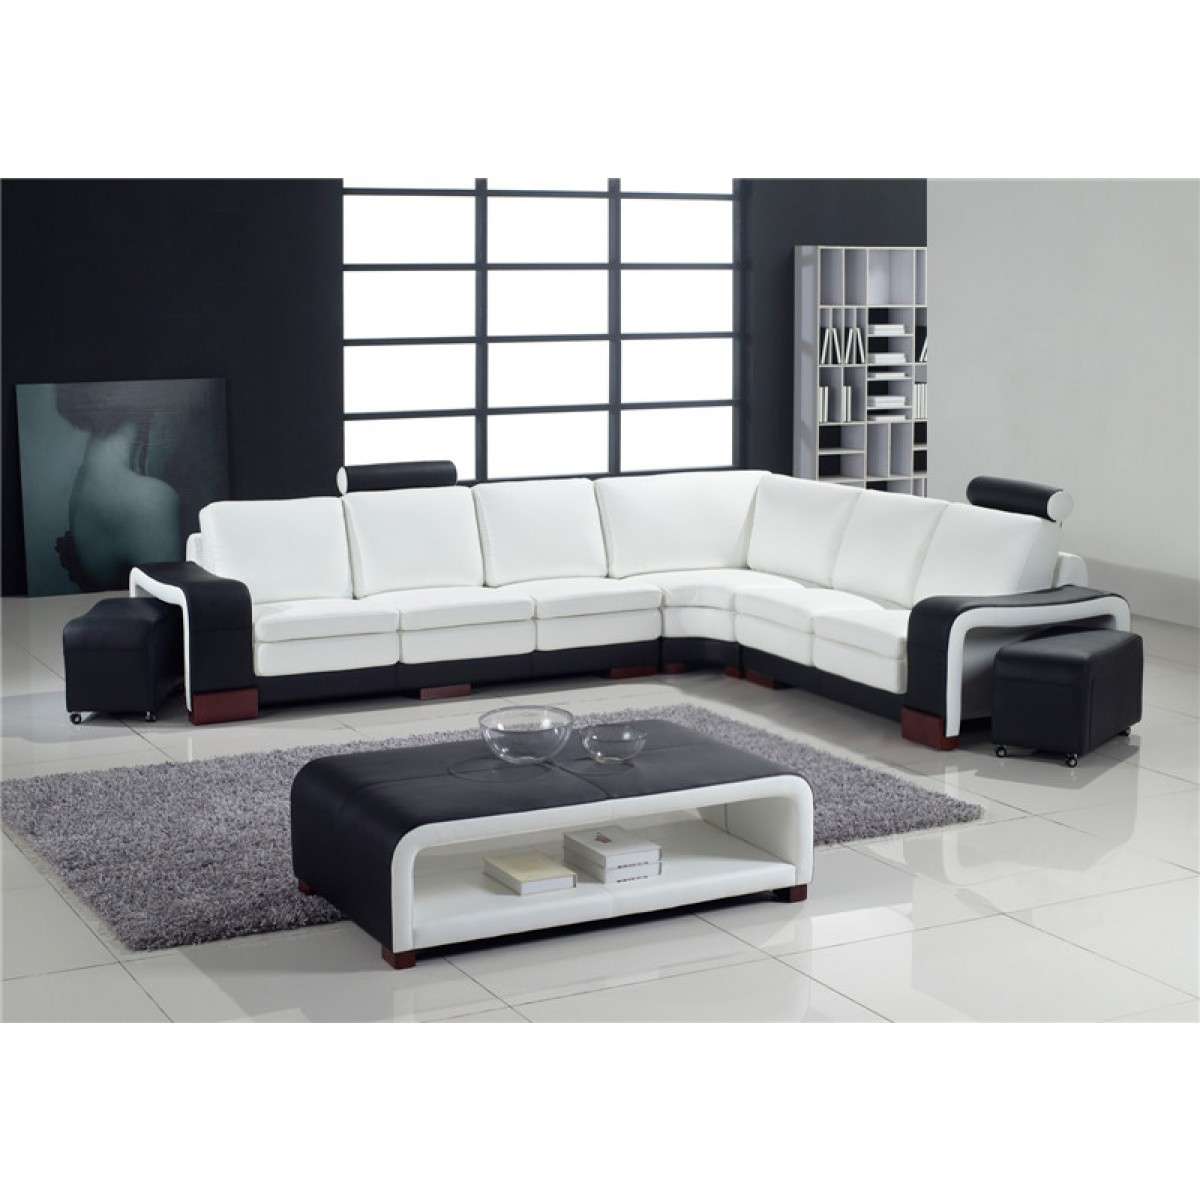 grand canap d 39 angle en cuir pleine fleur fabio option lit convertib. Black Bedroom Furniture Sets. Home Design Ideas